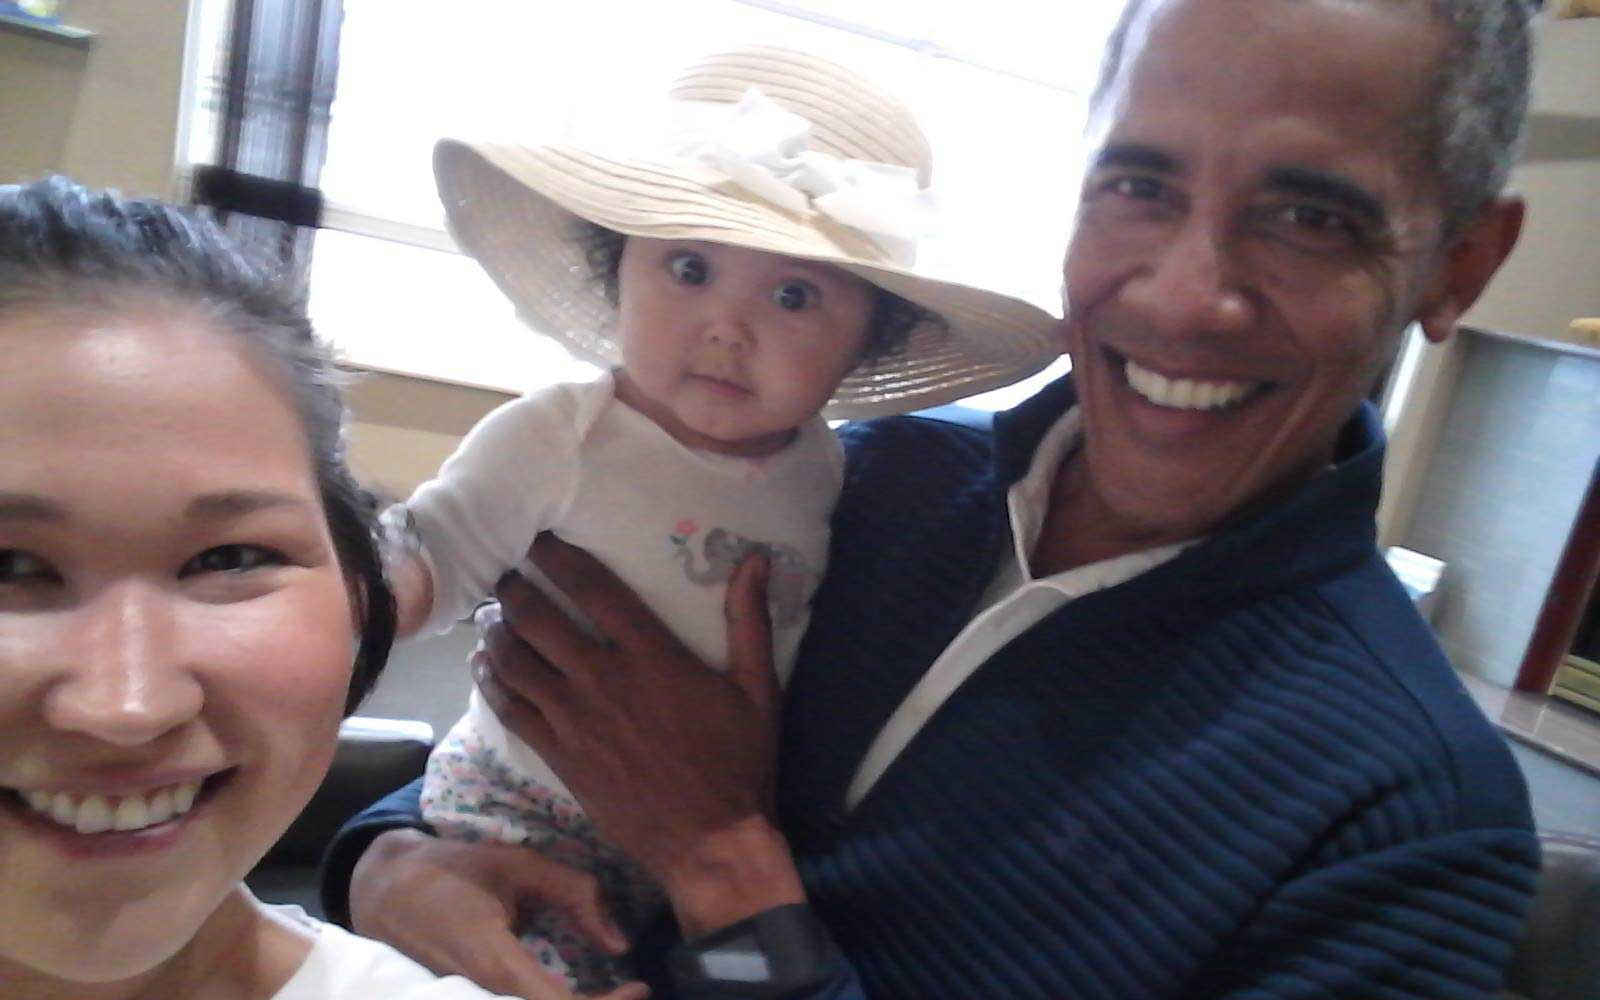 Obama Couldn't Resist Taking an Airport Selfie With This Adorable Baby